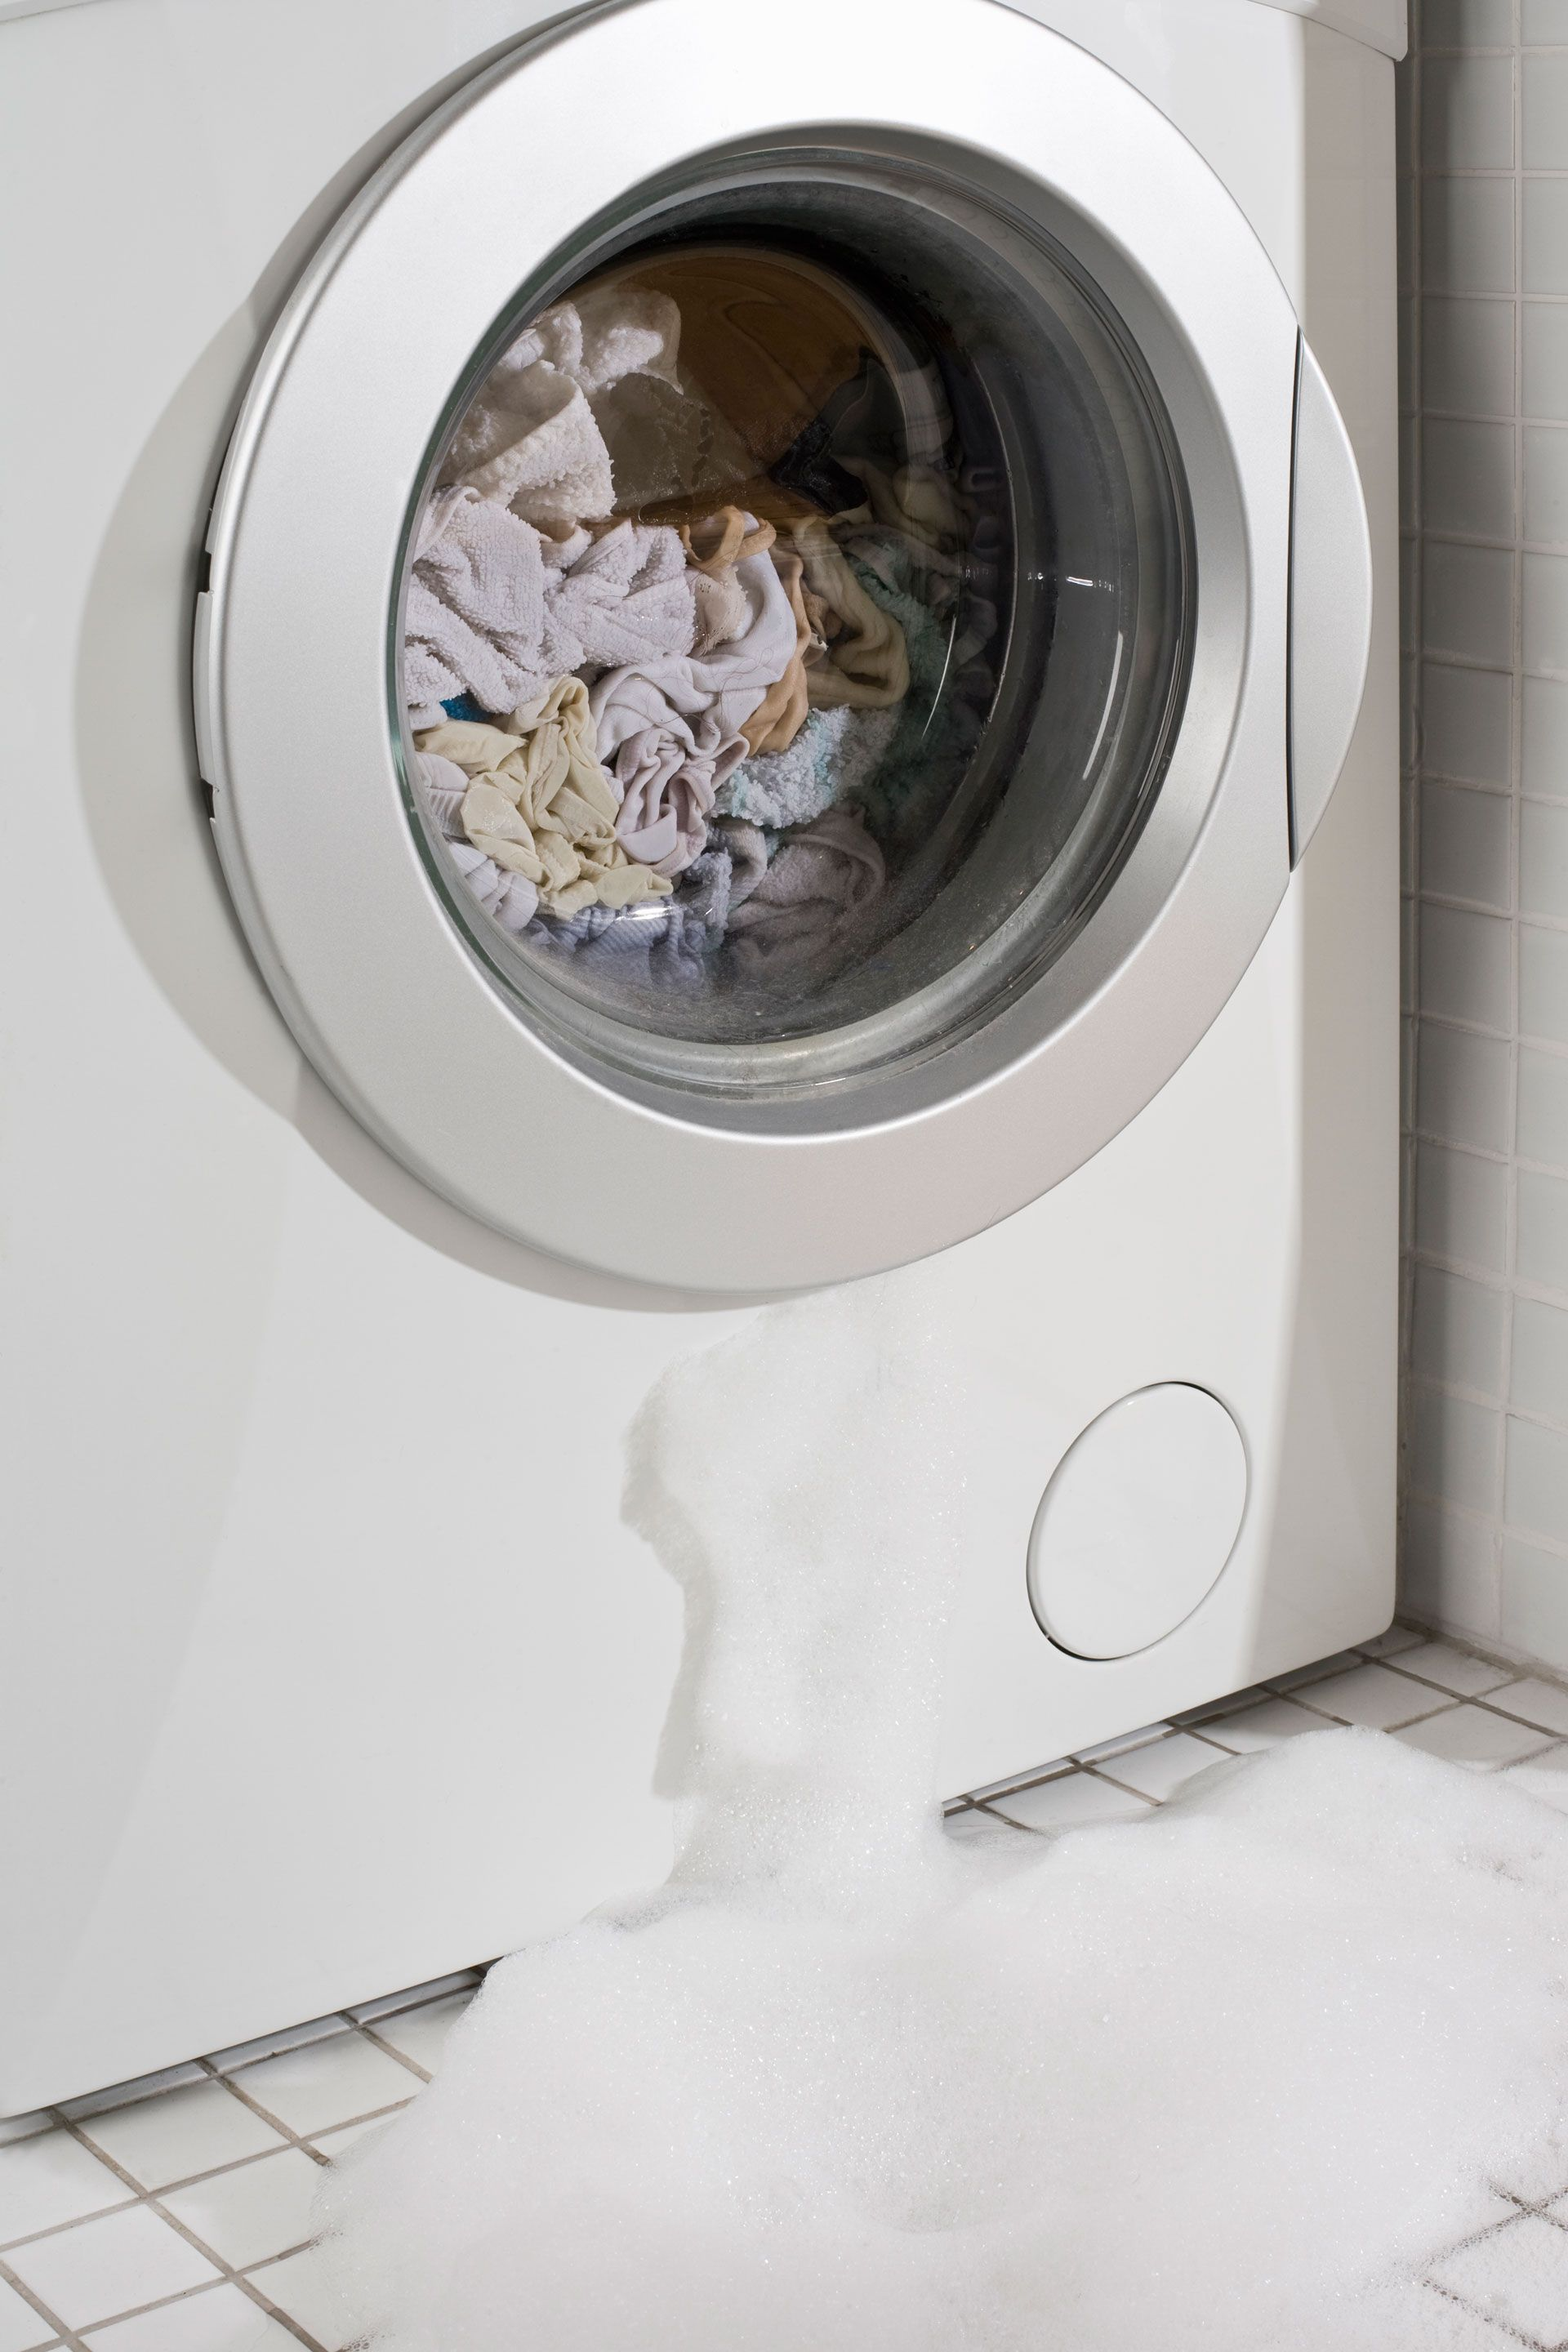 a leaky washing machine